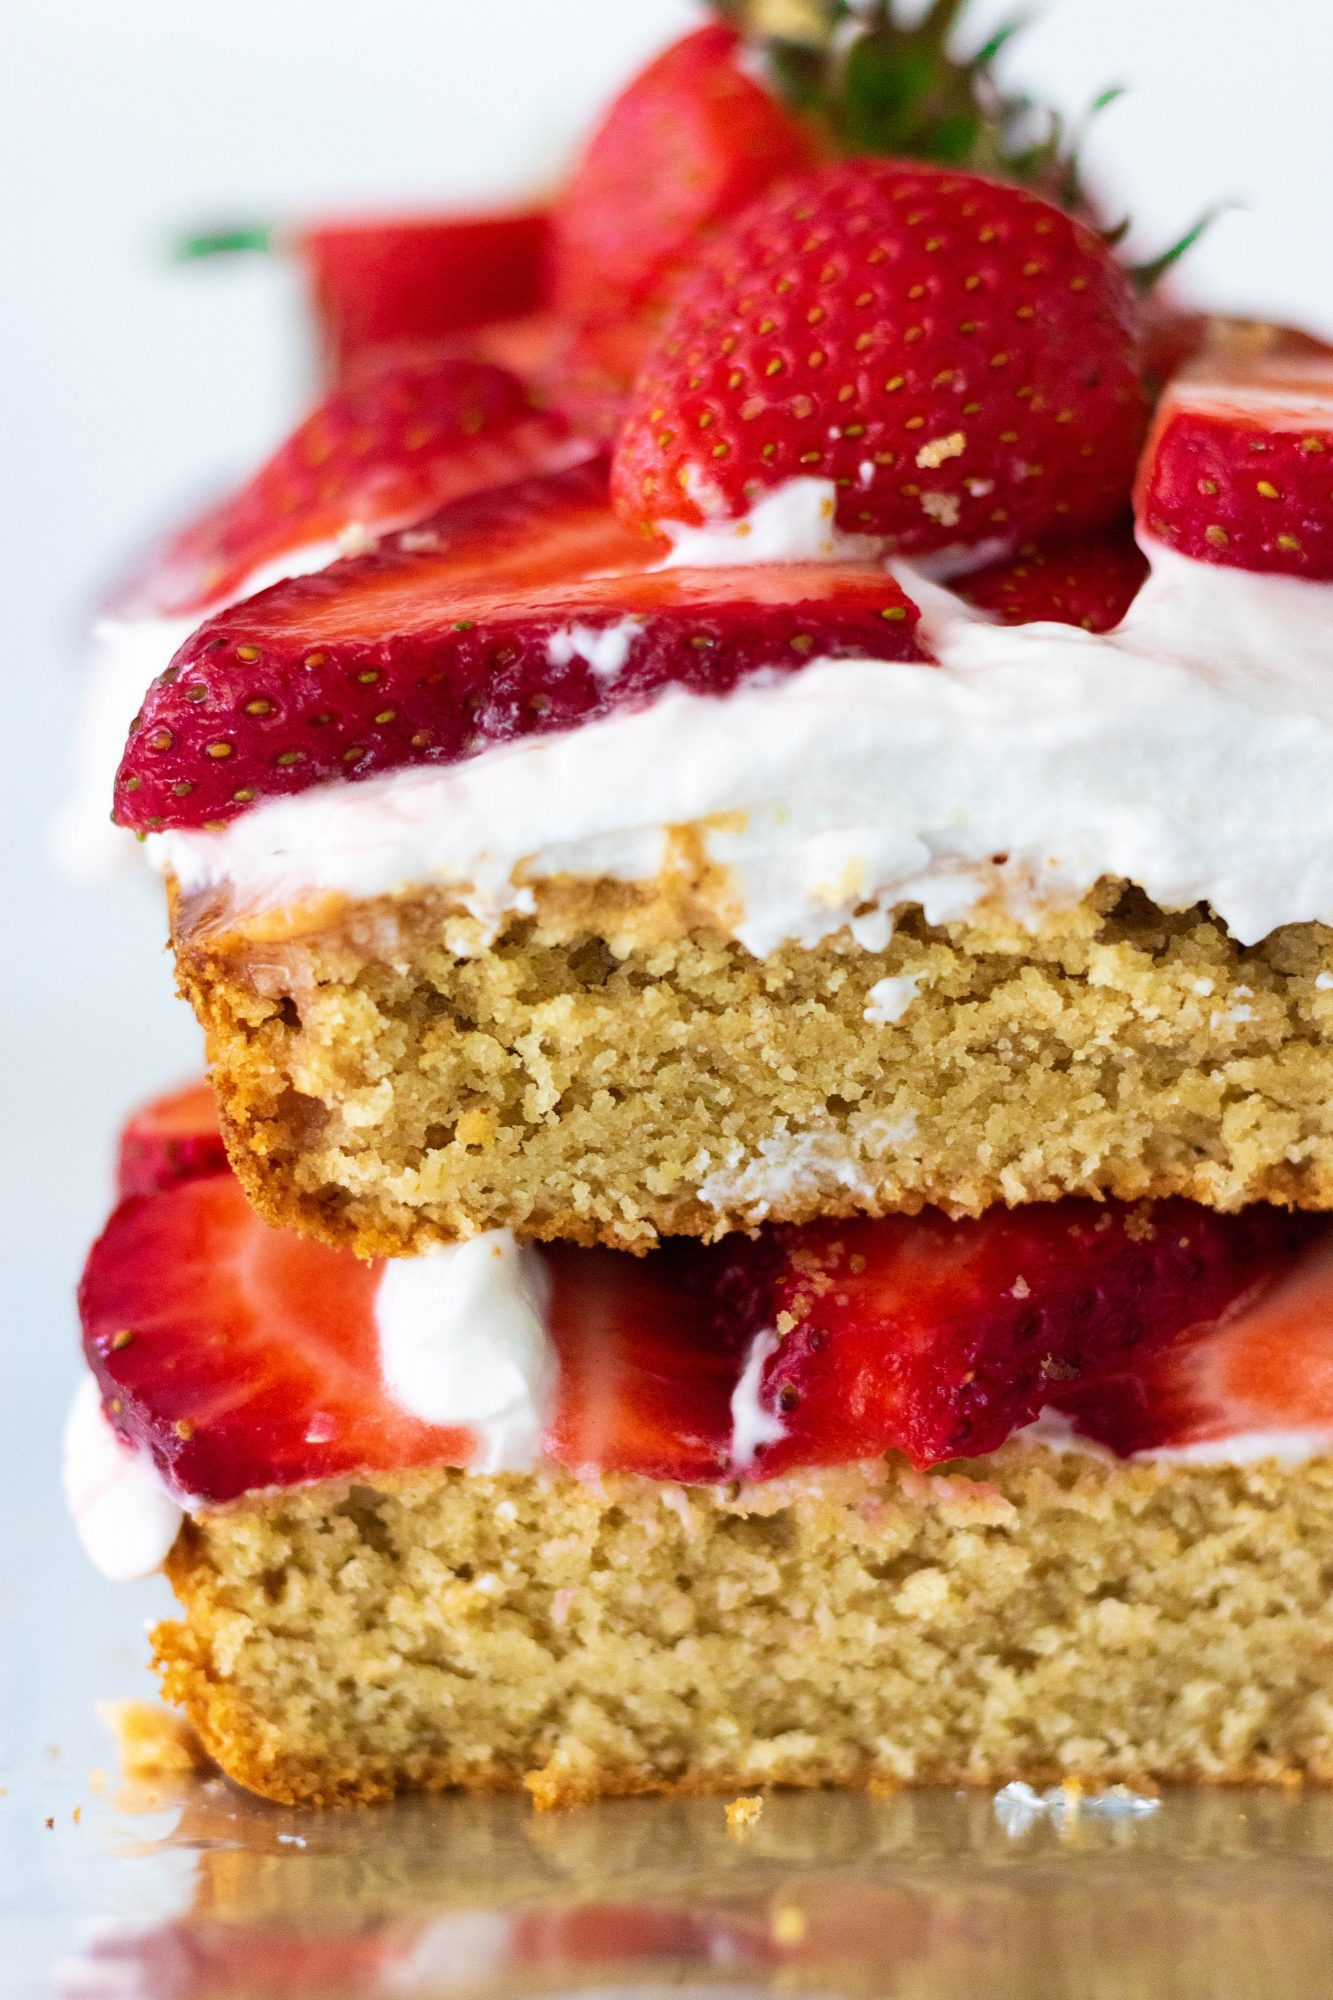 Vegan and Gluten-Free Strawberry Shortcake